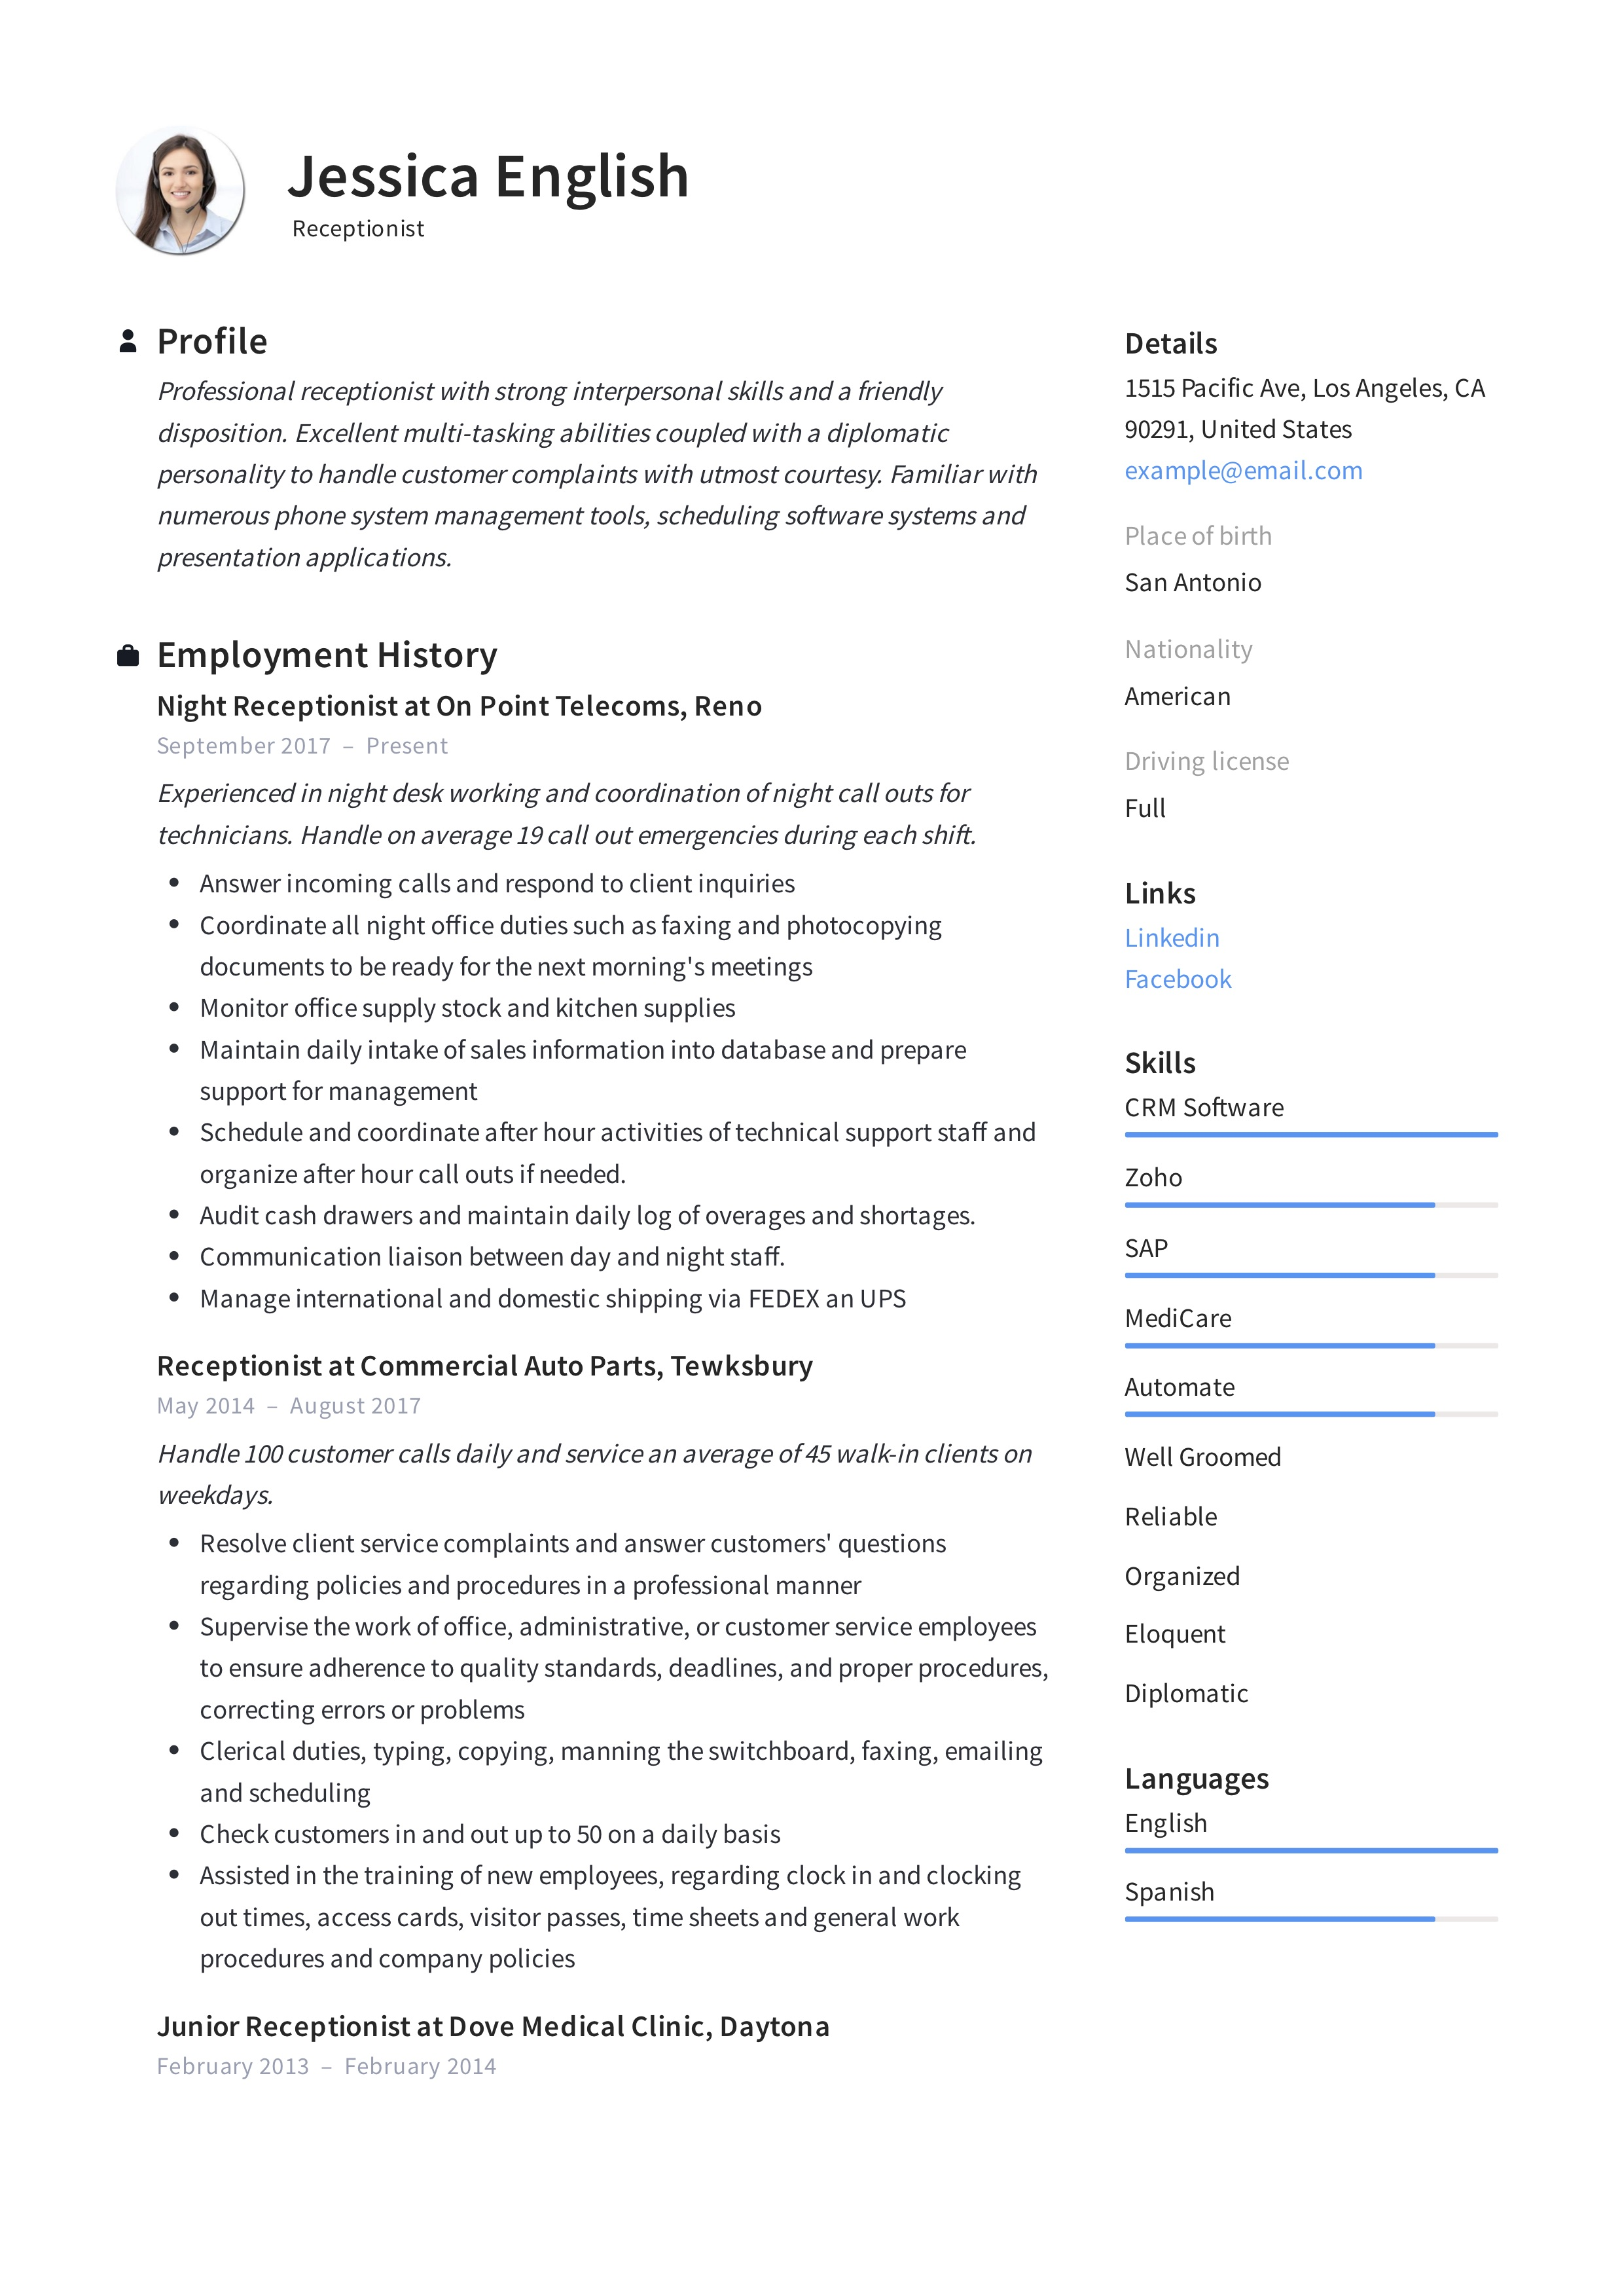 Receptionist Resume Example Writing Guide 12 Samples Pdf 2020